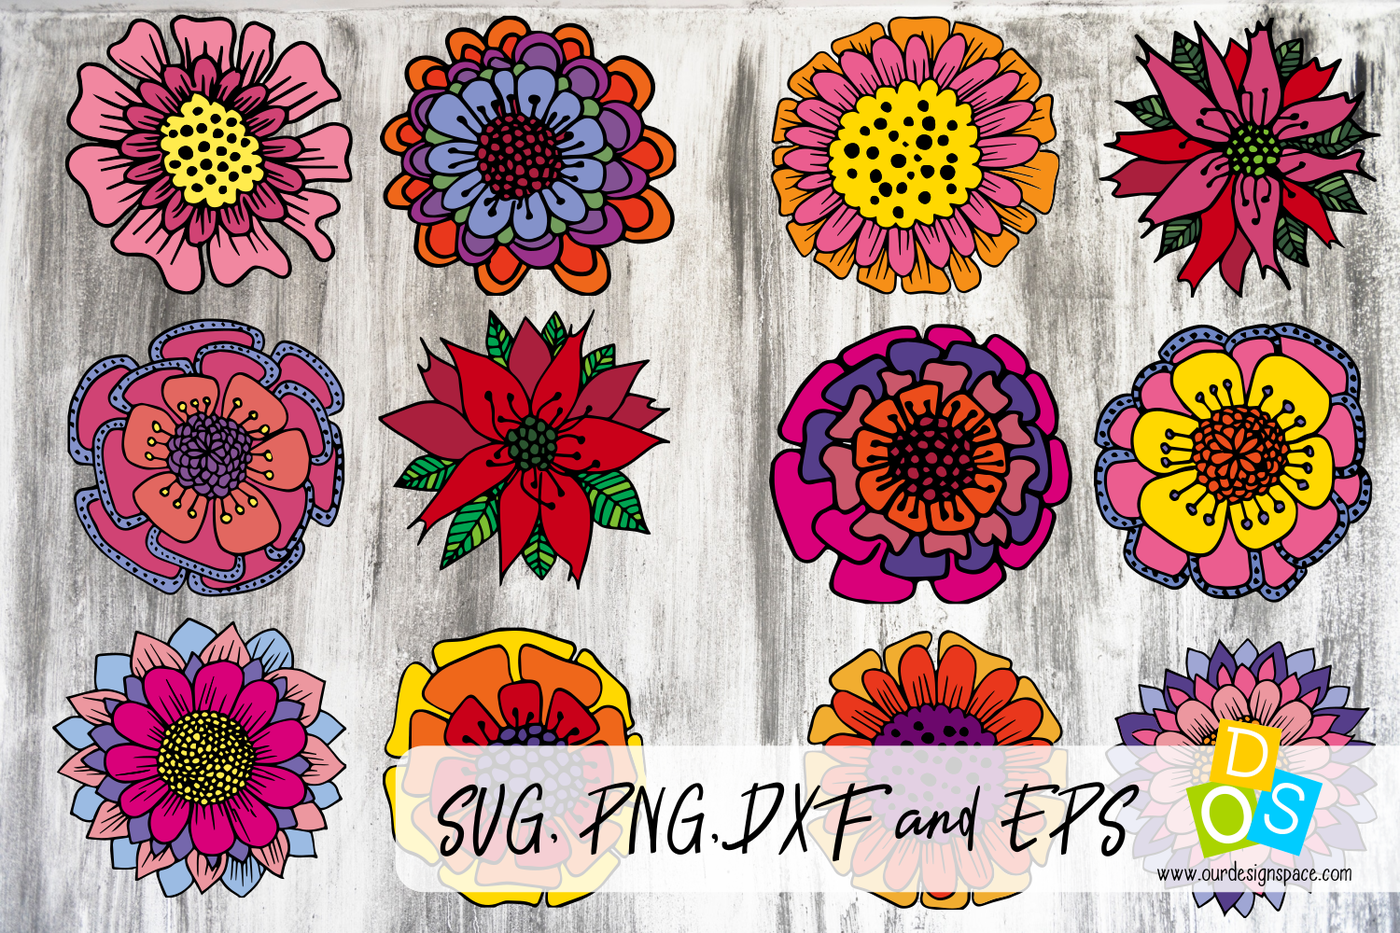 12 Doodle Christmas Flowers Svg Png Dxf And Eps Files By Our